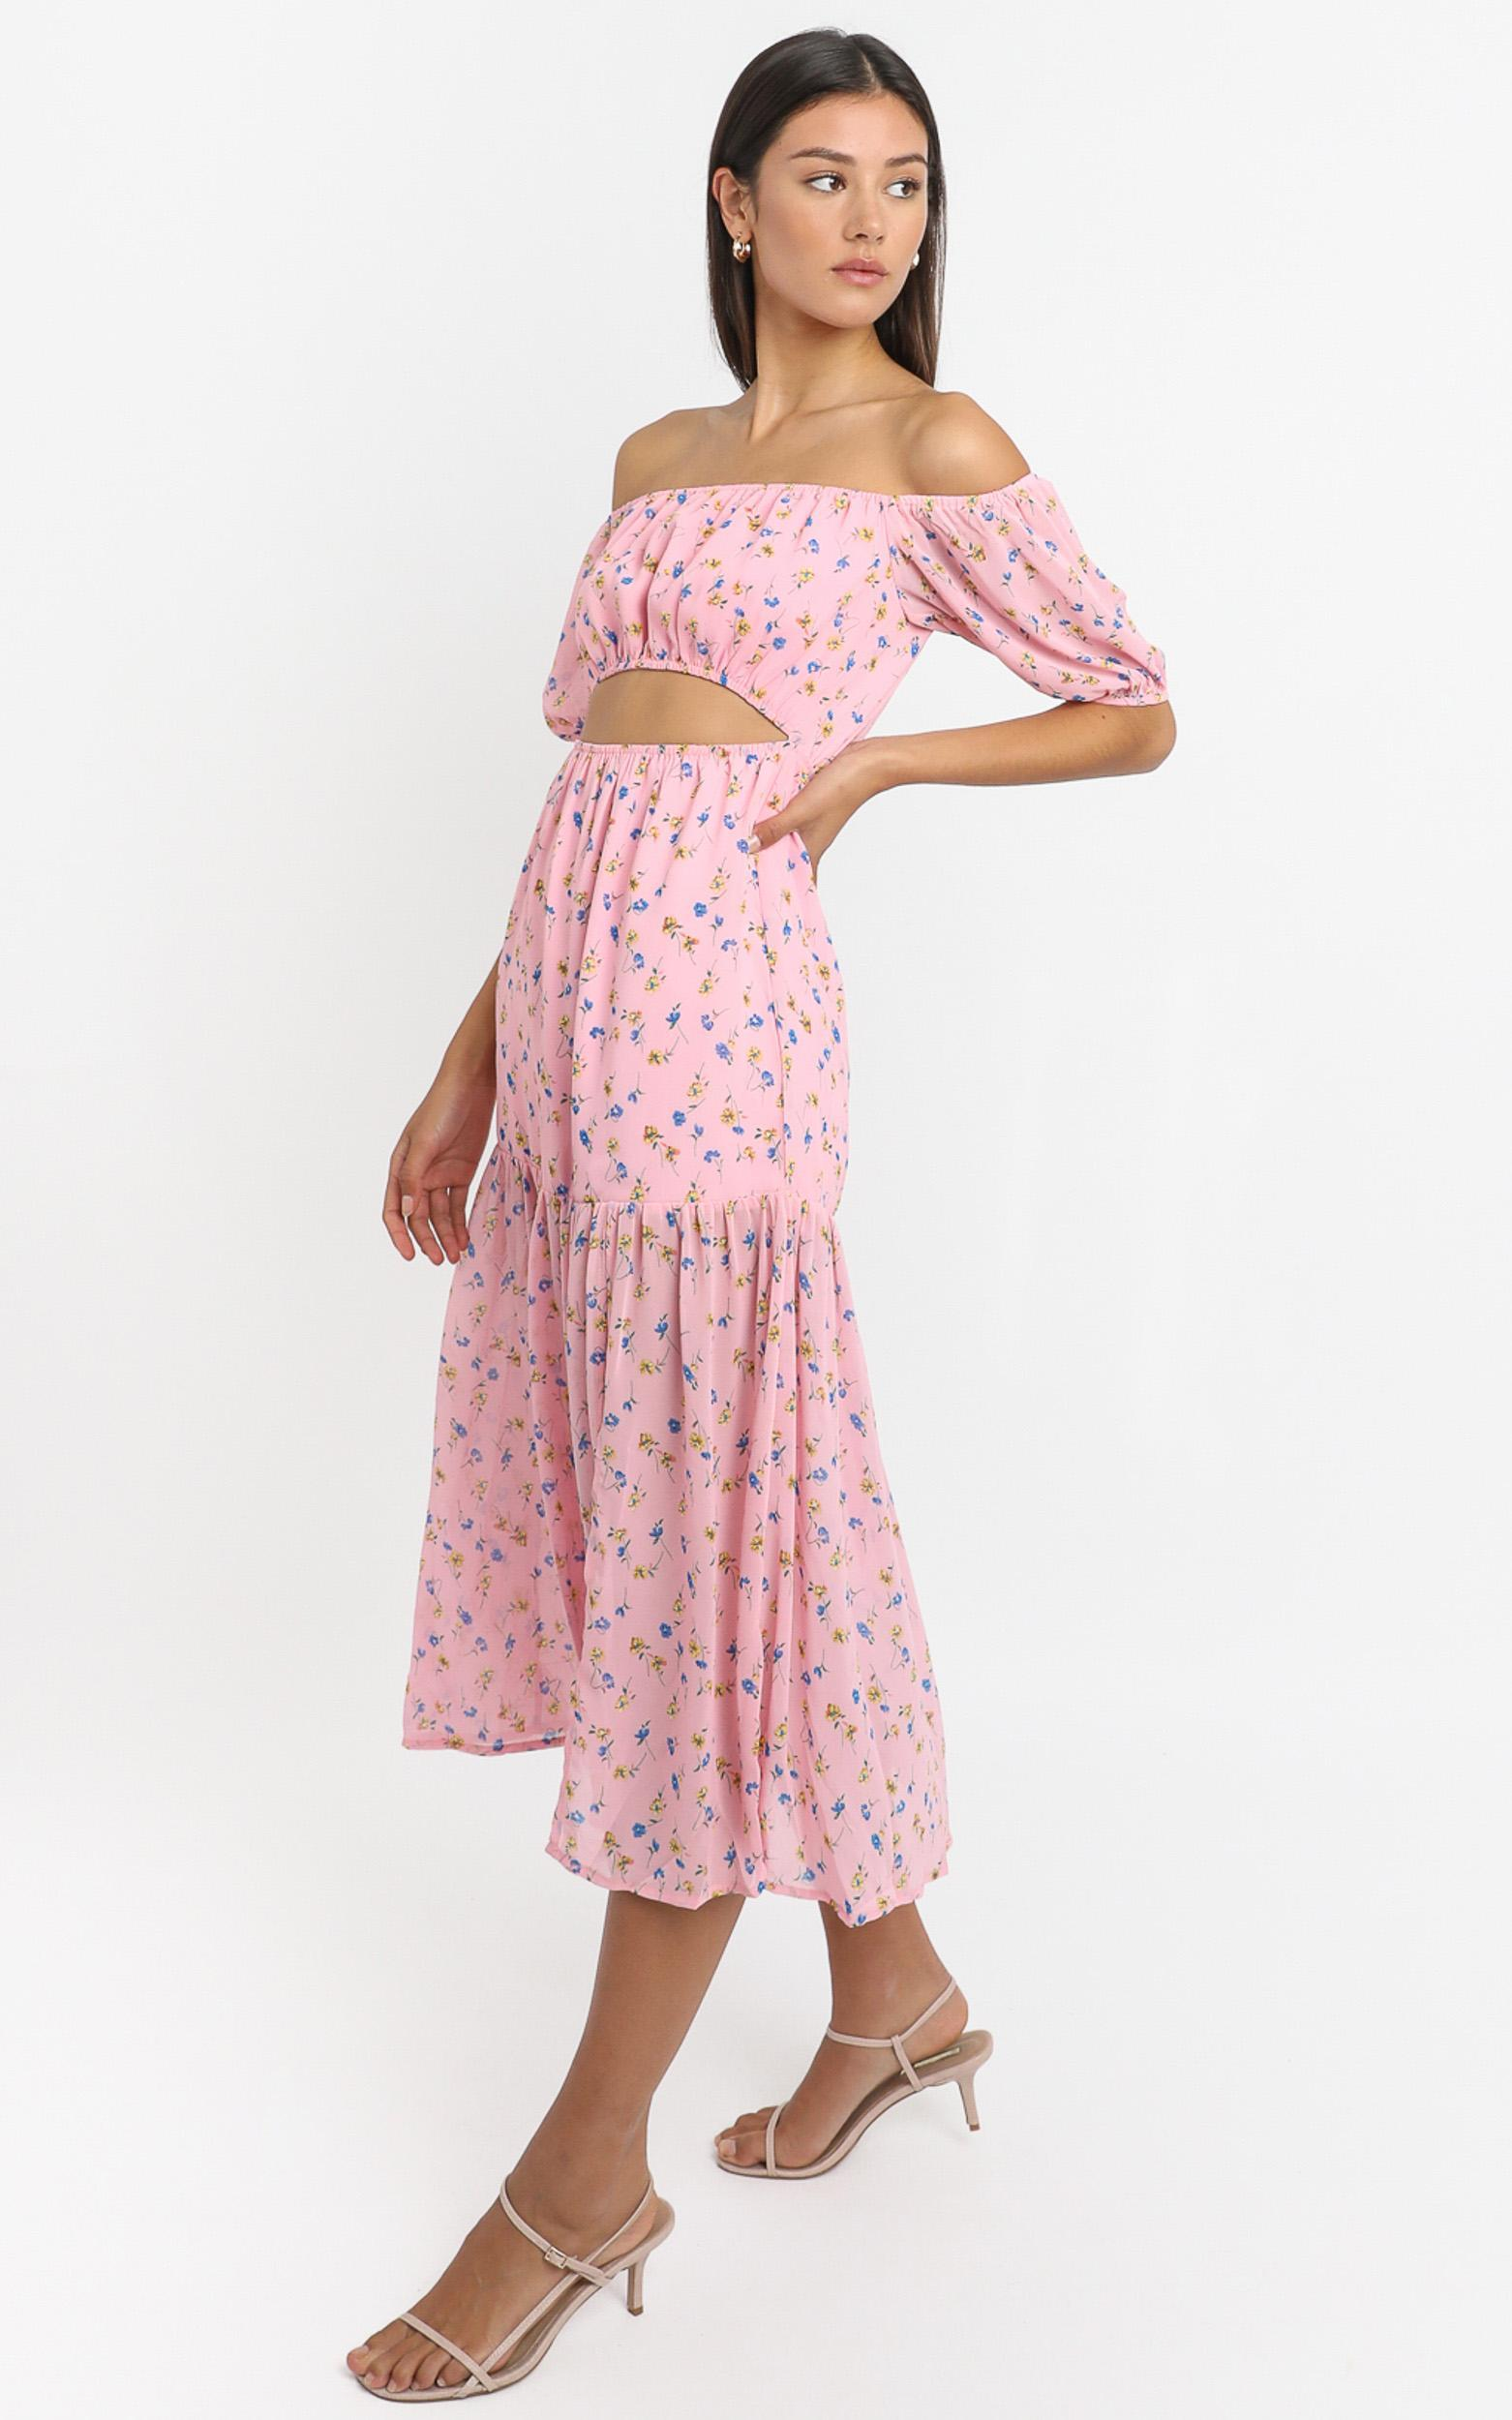 Saint Tropez Dress in pink floral - 4 (XXS), Pink, hi-res image number null